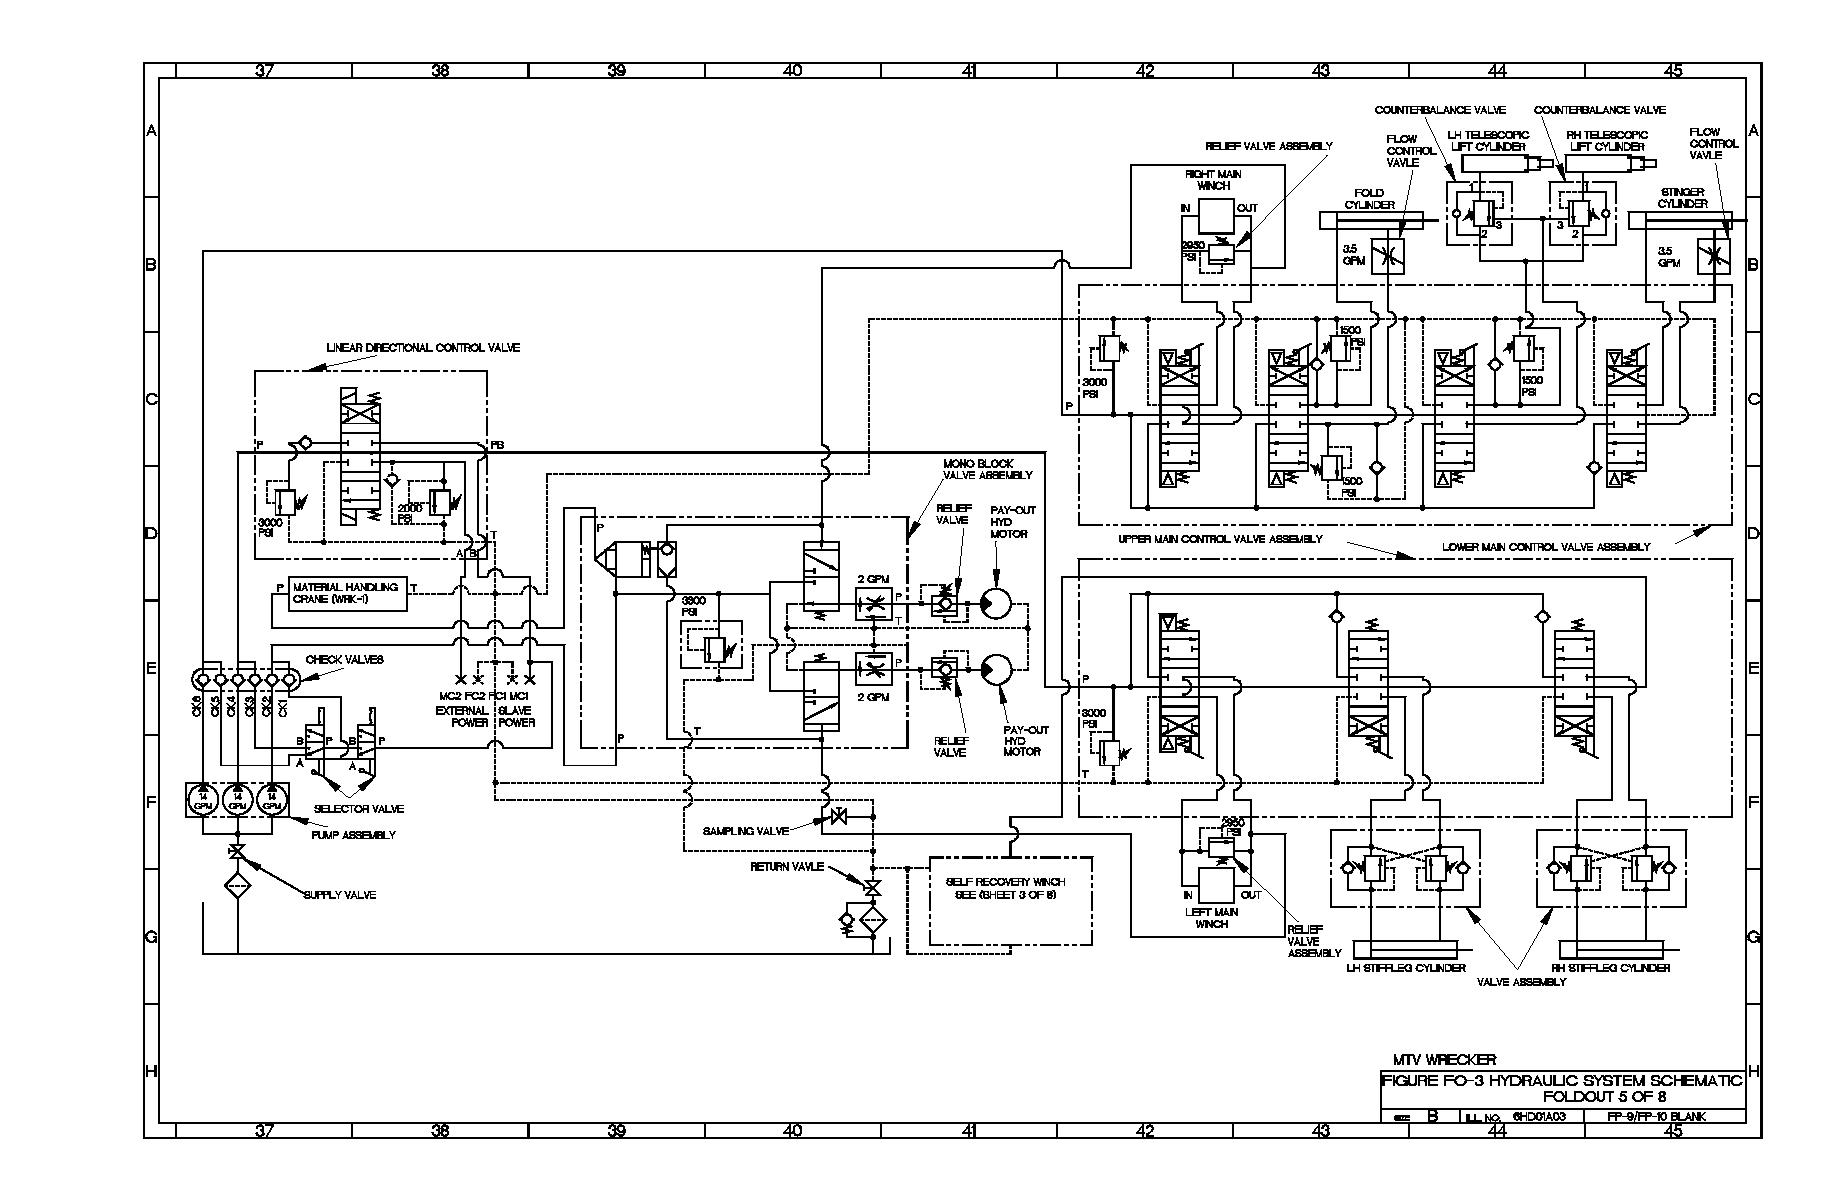 Figure Fo 3 Hydraulic System Schematic Foldout 5 Of 8